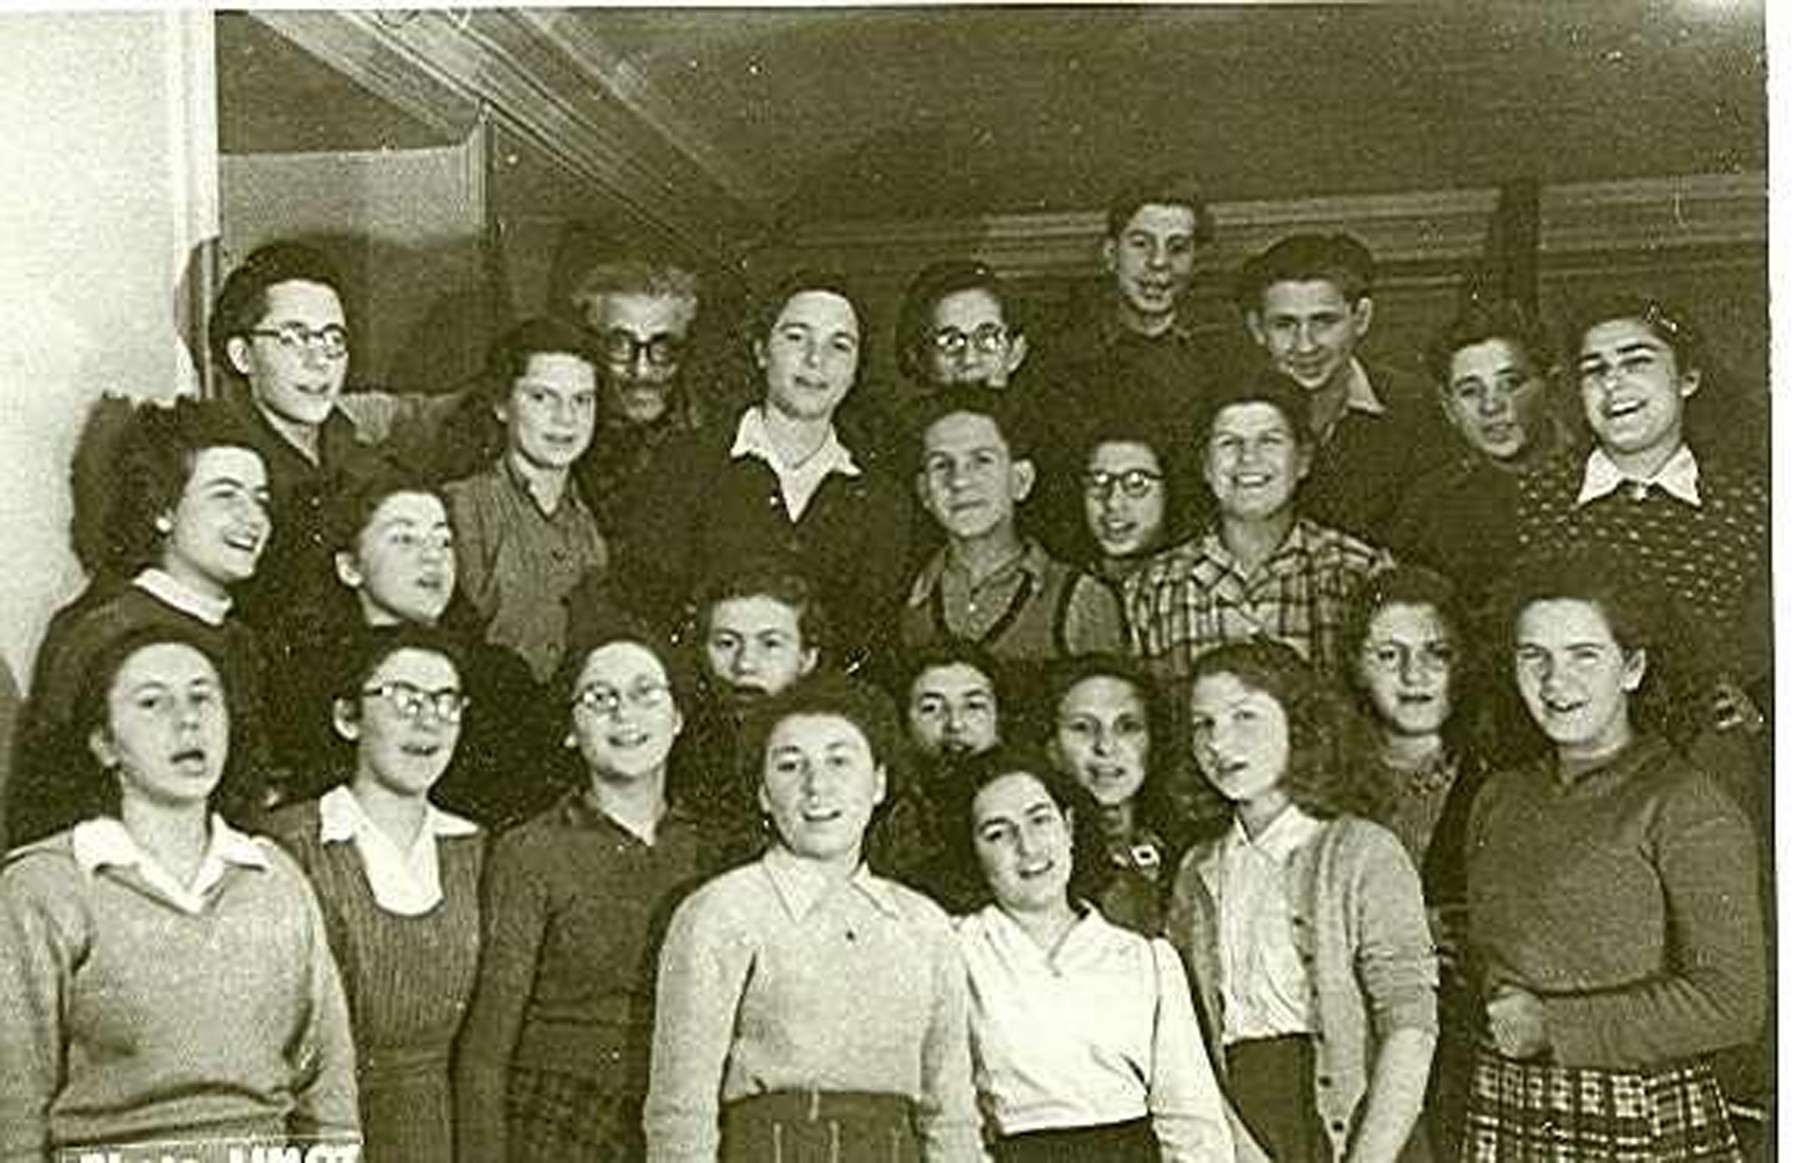 Group portrait of the choir of the Versailles children's home, an OSE home for religious teenagers.  Felix Goldschmidt is pictured in the back row third from the left.